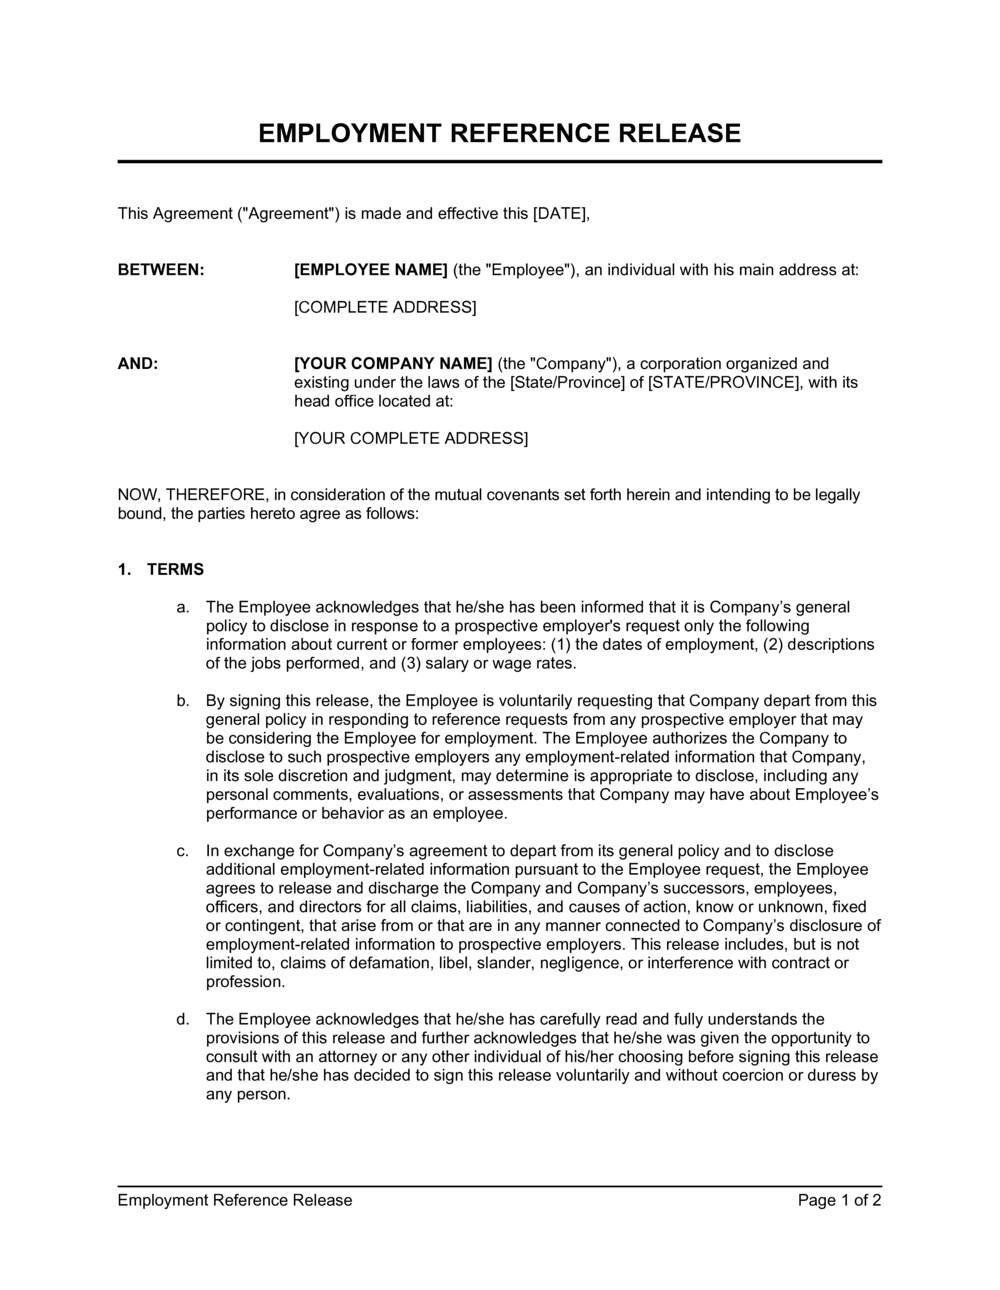 Business-in-a-Box's Employee Reference Release Agreement Template